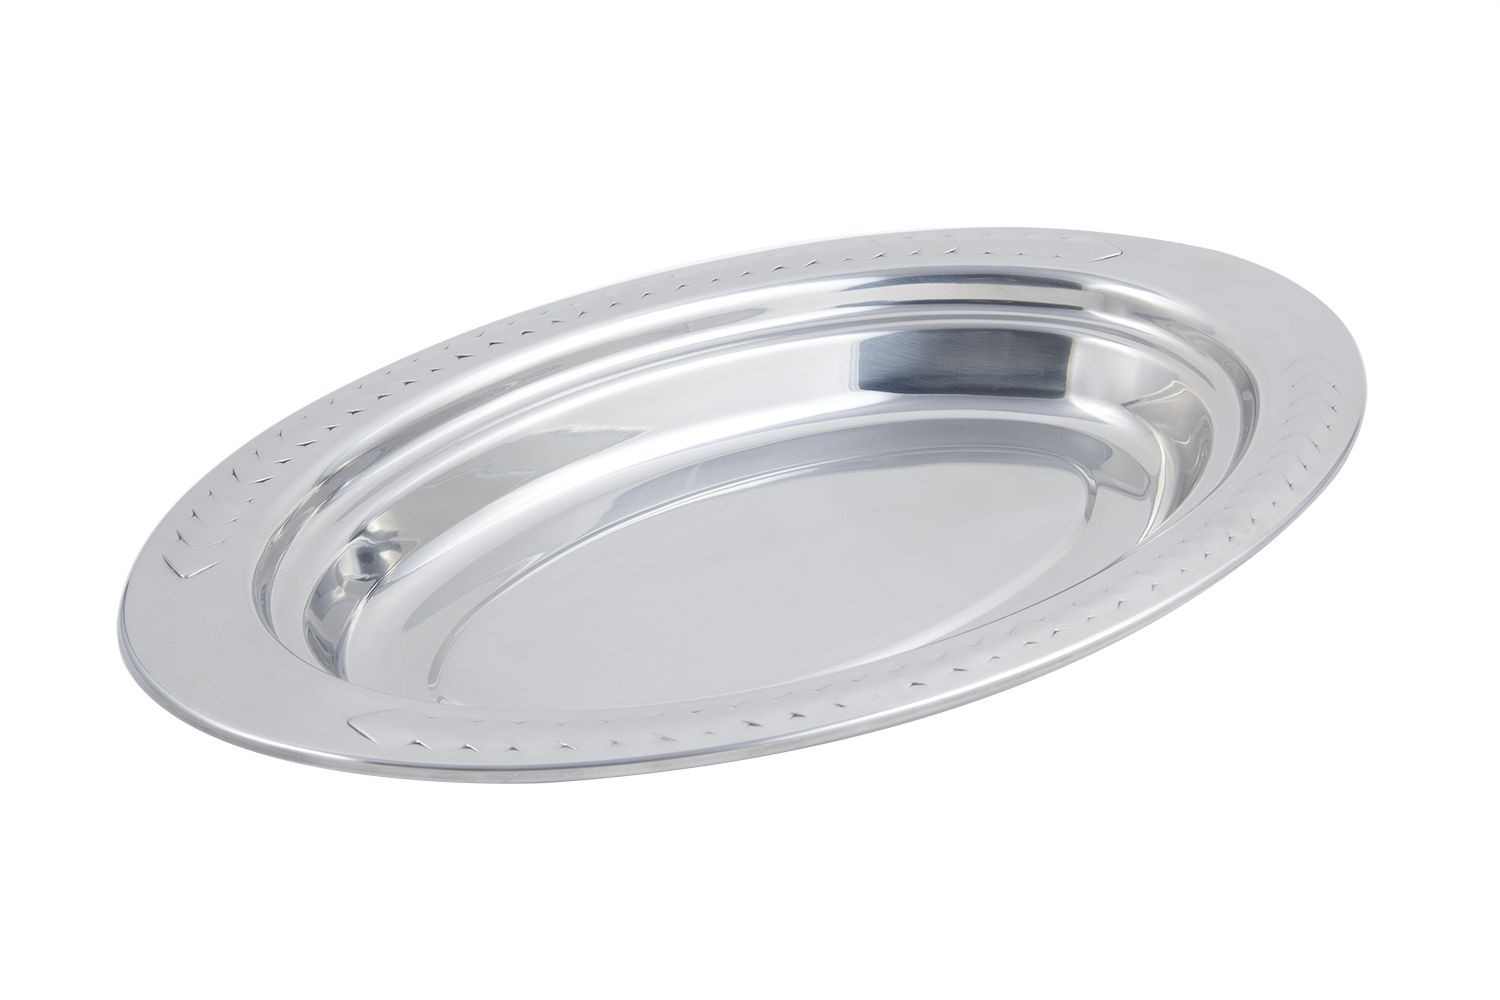 Bon Chef 5488 Laurel Design Oval Pan, 2 1/2 Qt.